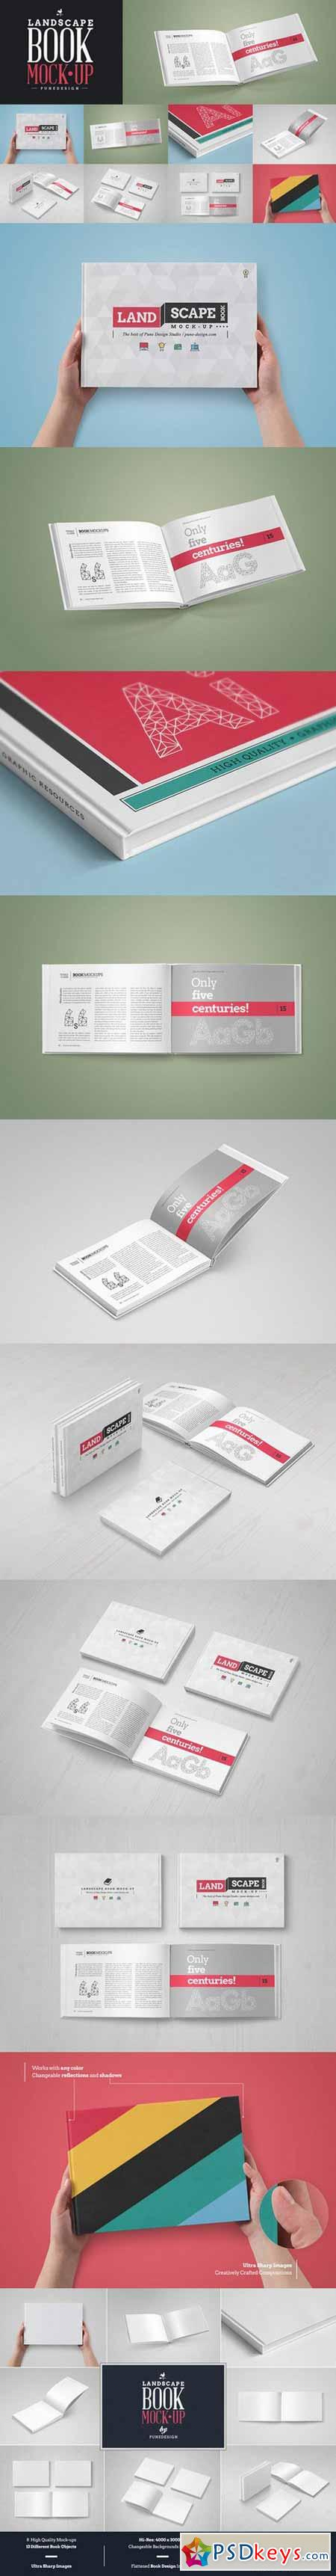 Landscape Book Mock-Up Set 580946